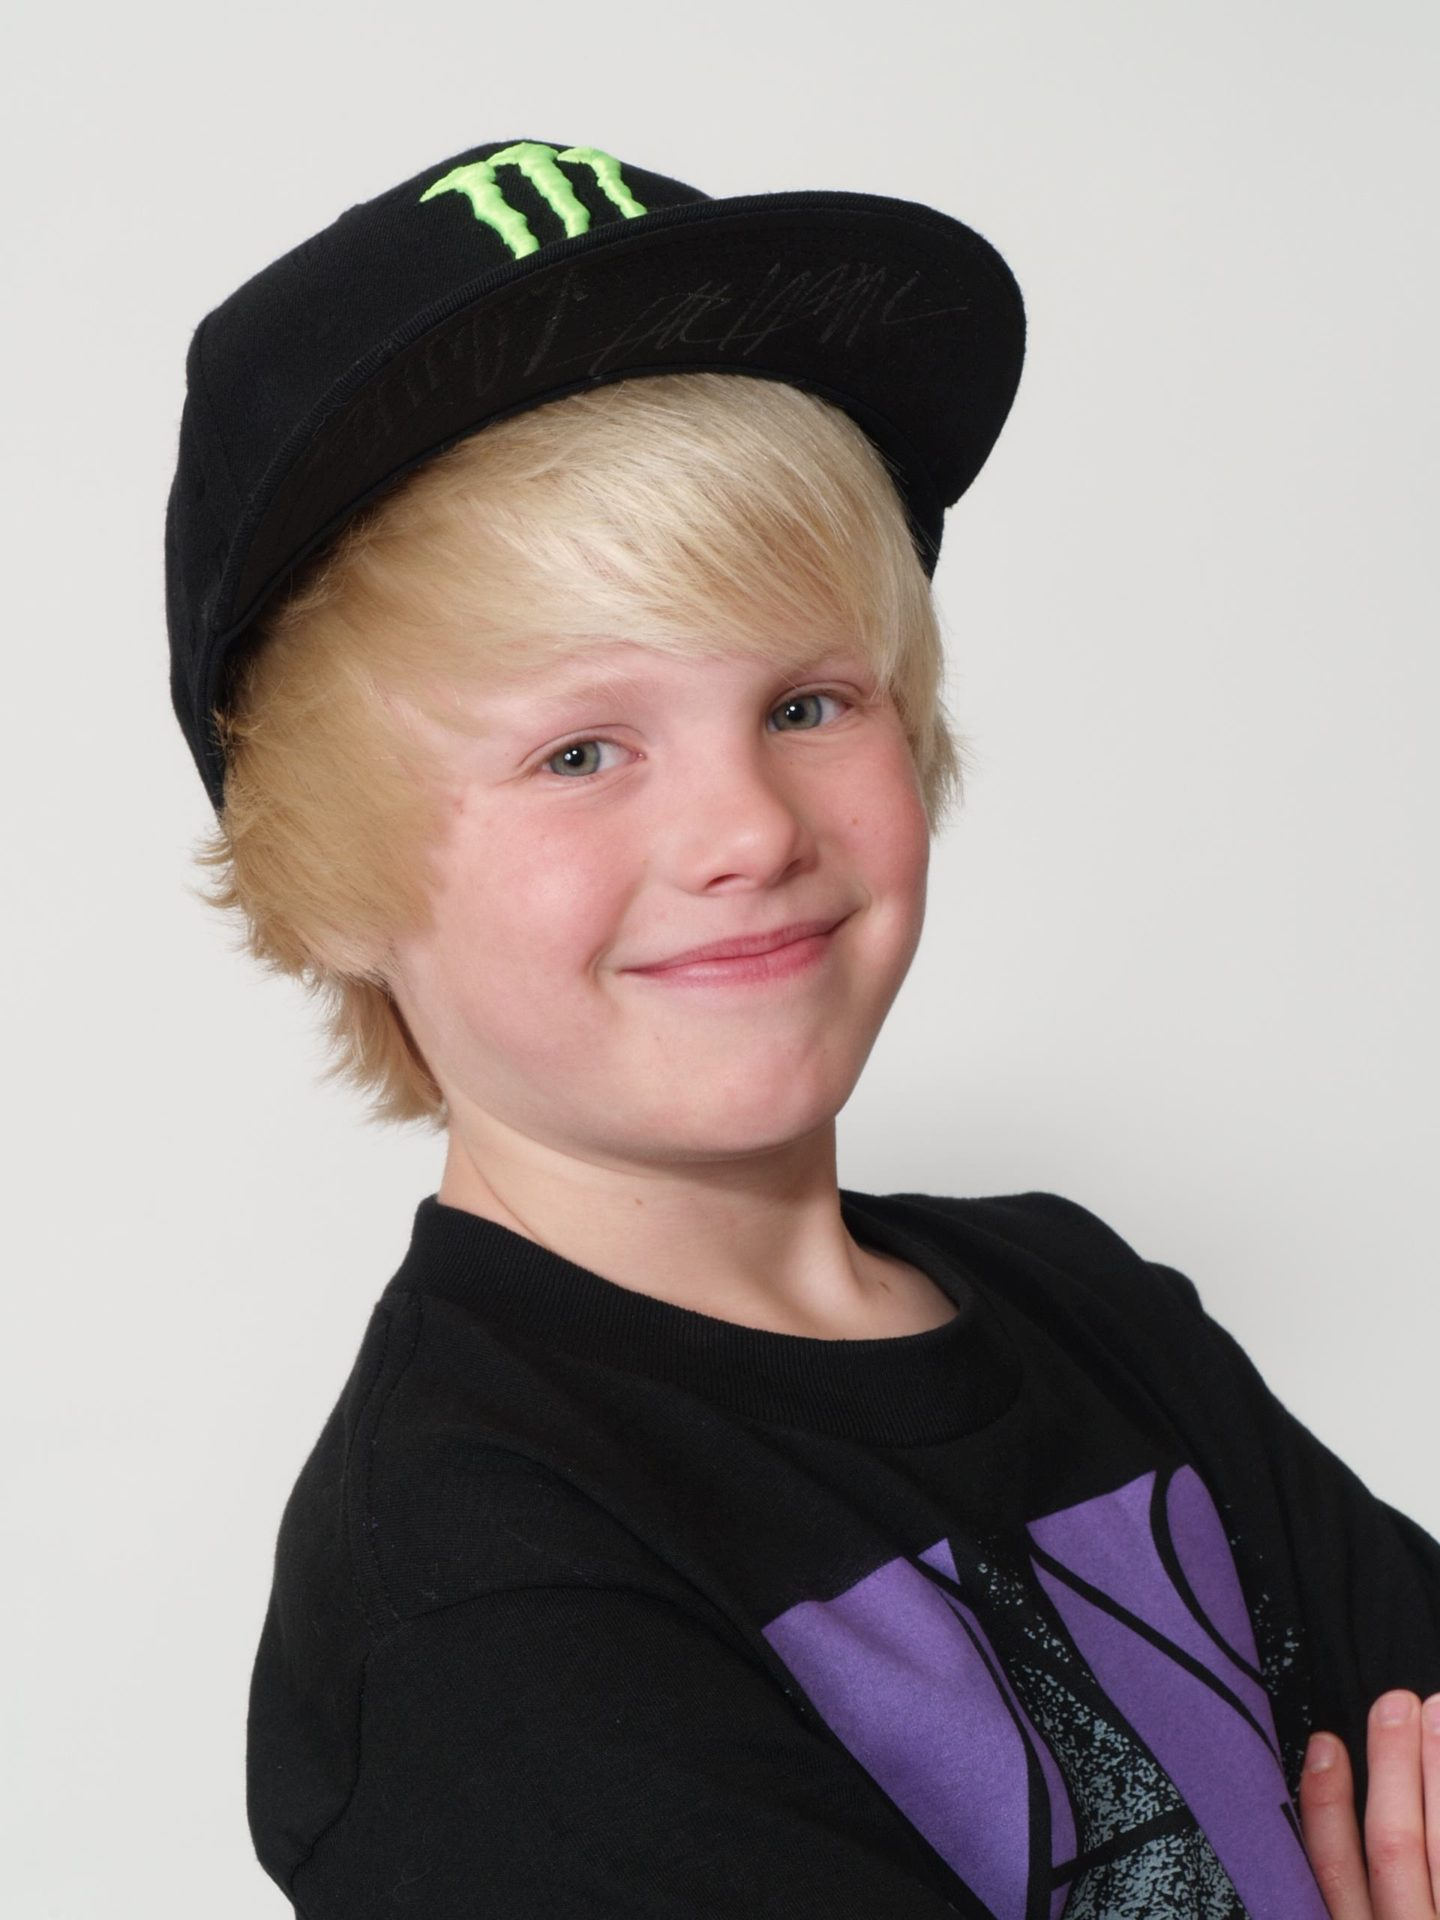 who is carson lueders dating 2015 meme